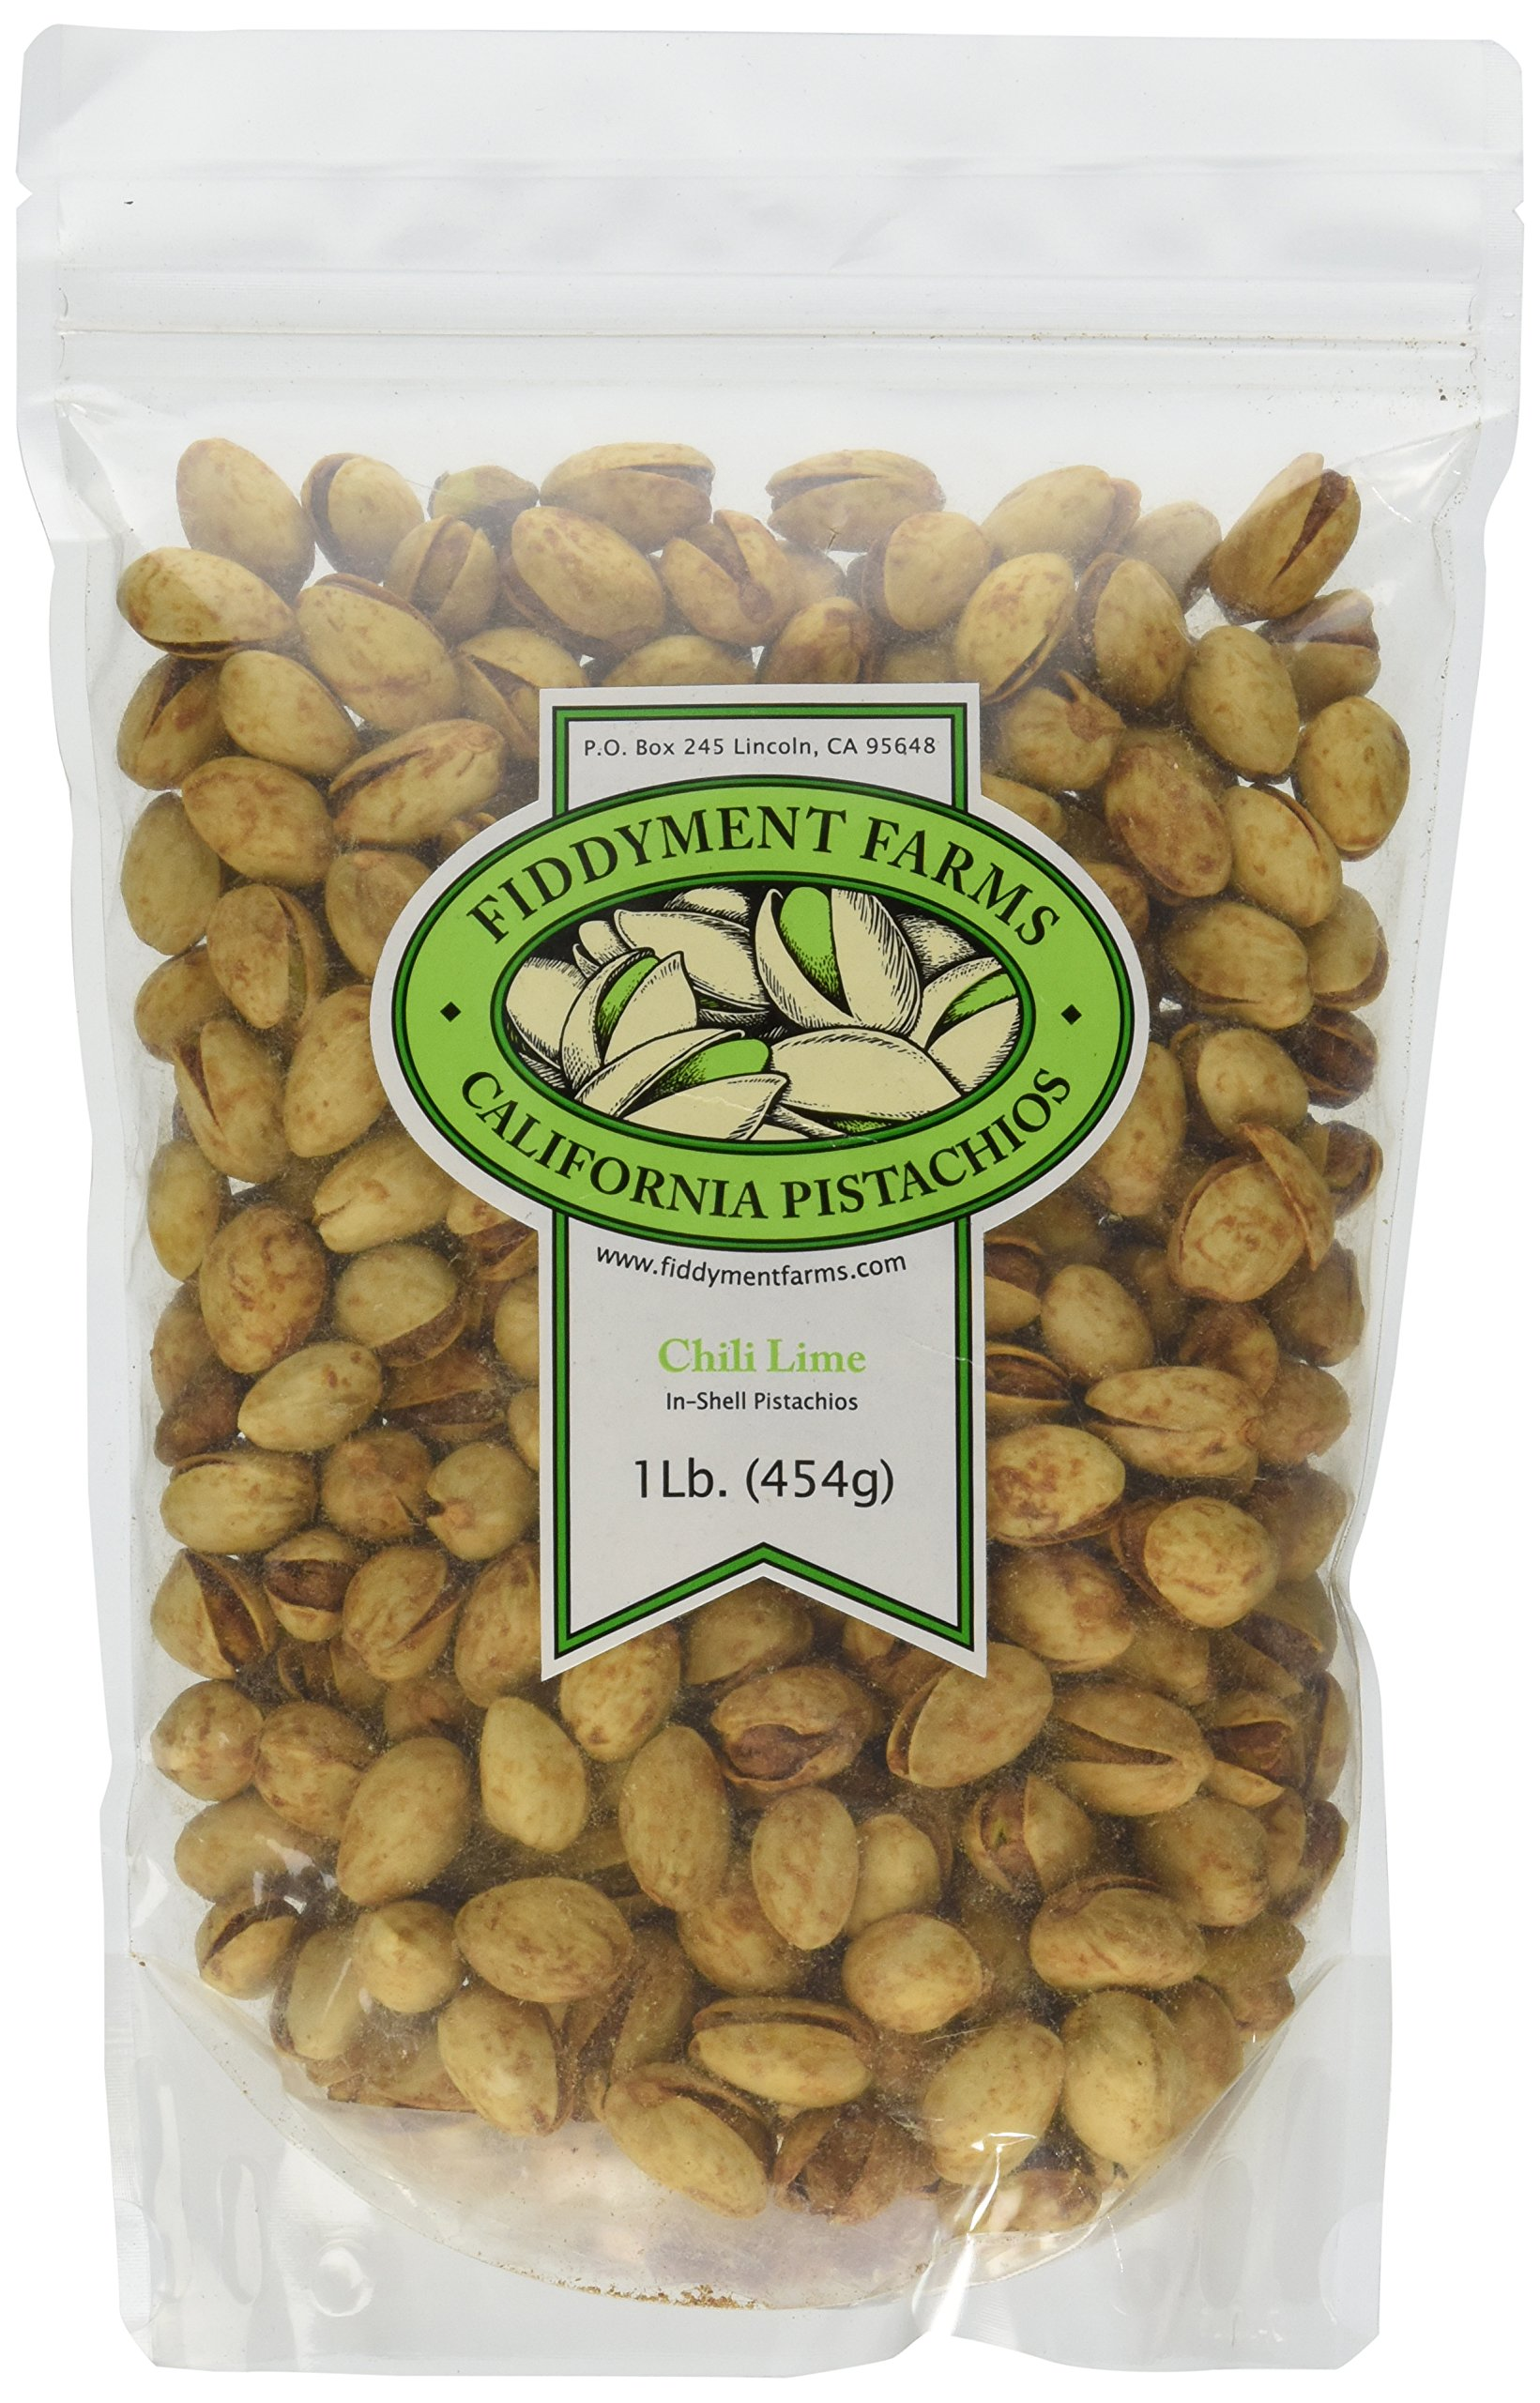 Fiddyment Farms 1 Lb. Chili Lime Pistachios by Fiddyment Farms